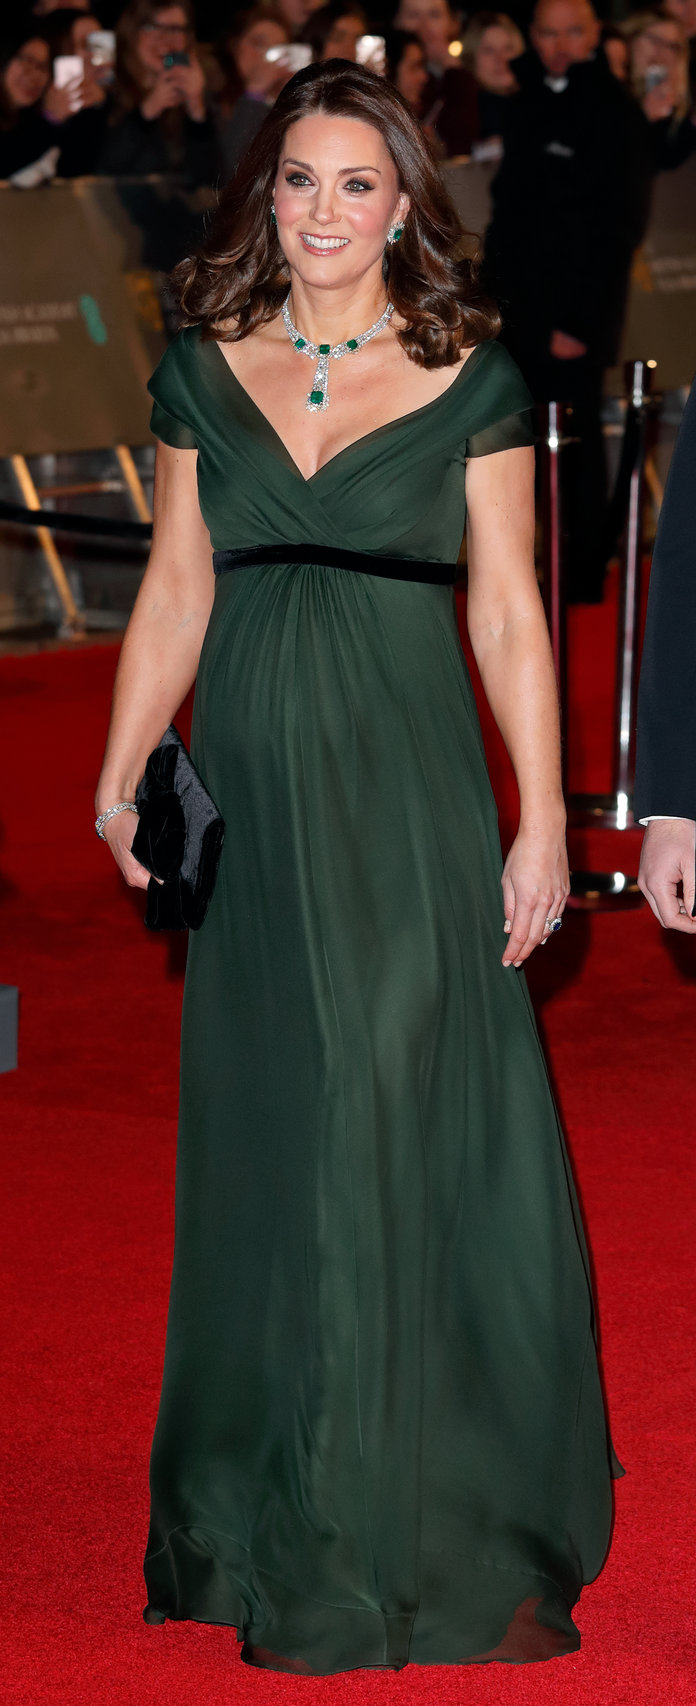 Kate Middleton s Best Maternity Style Moments InStyle com 0d6c4b705